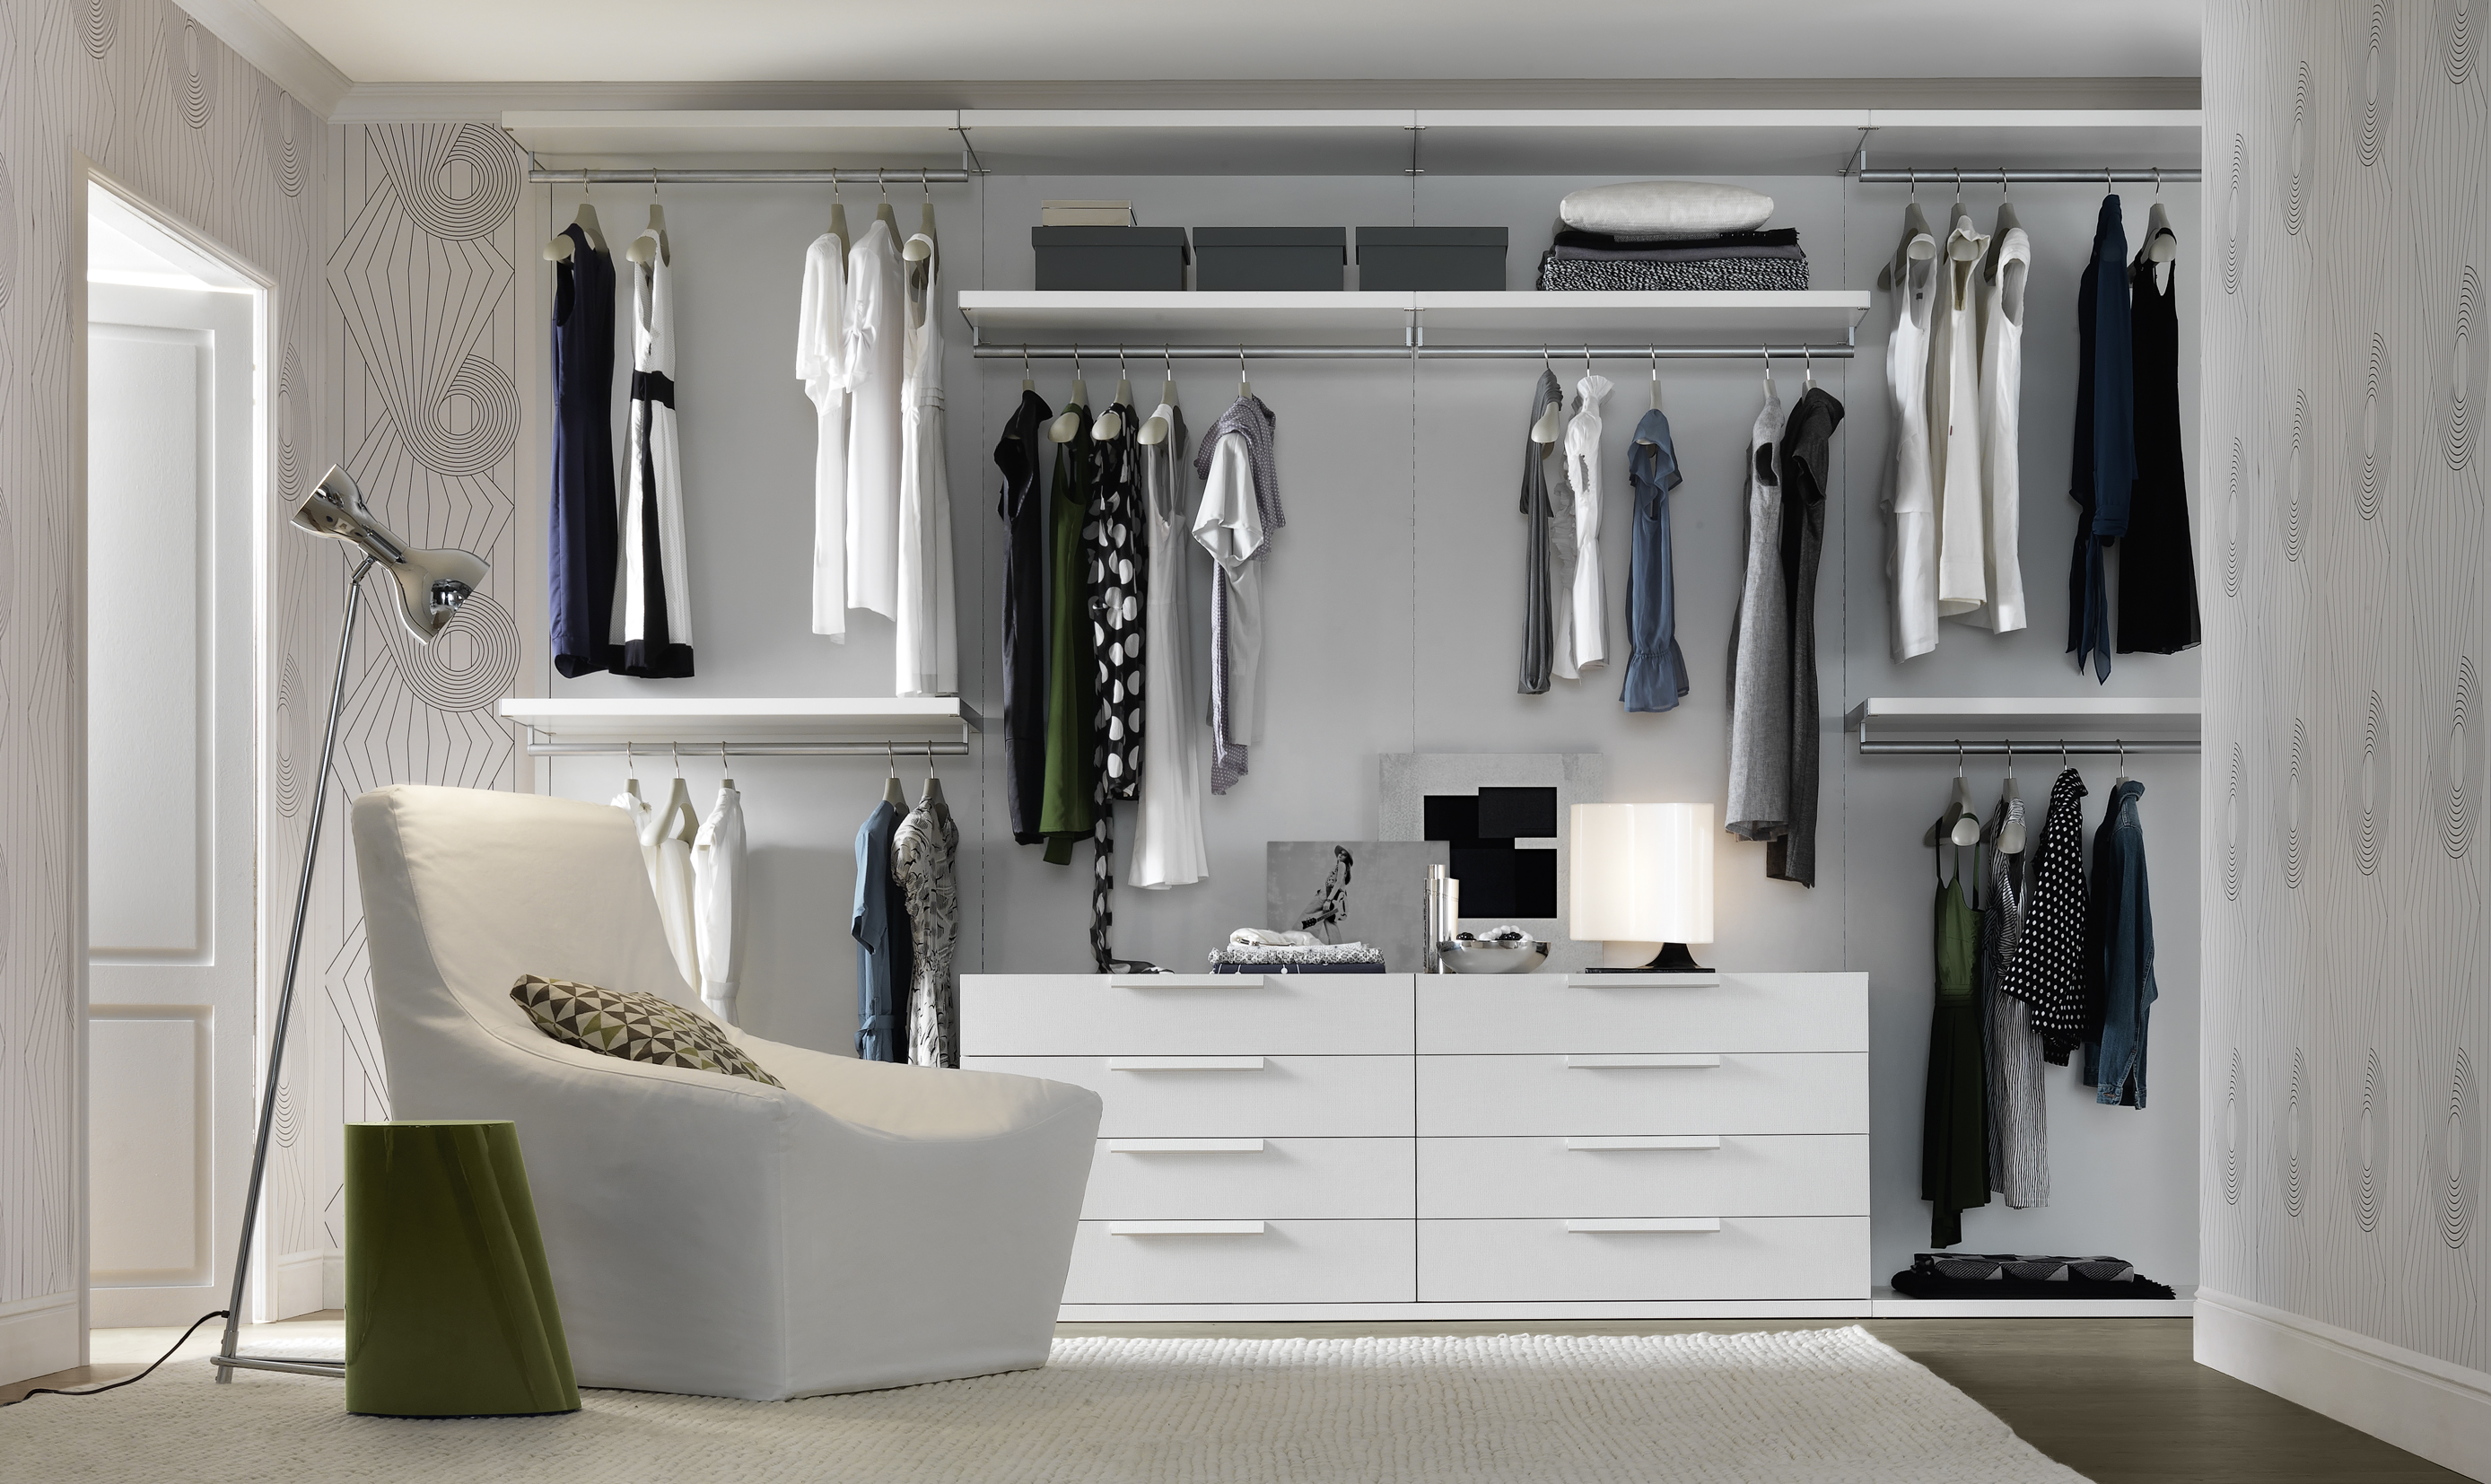 wardrobe-design-online-ikea-trend-decoration-walk-in-closet-design-california-with-a-walk-in-closet-from-ikea-furniture-images-stylish-ikea-closets